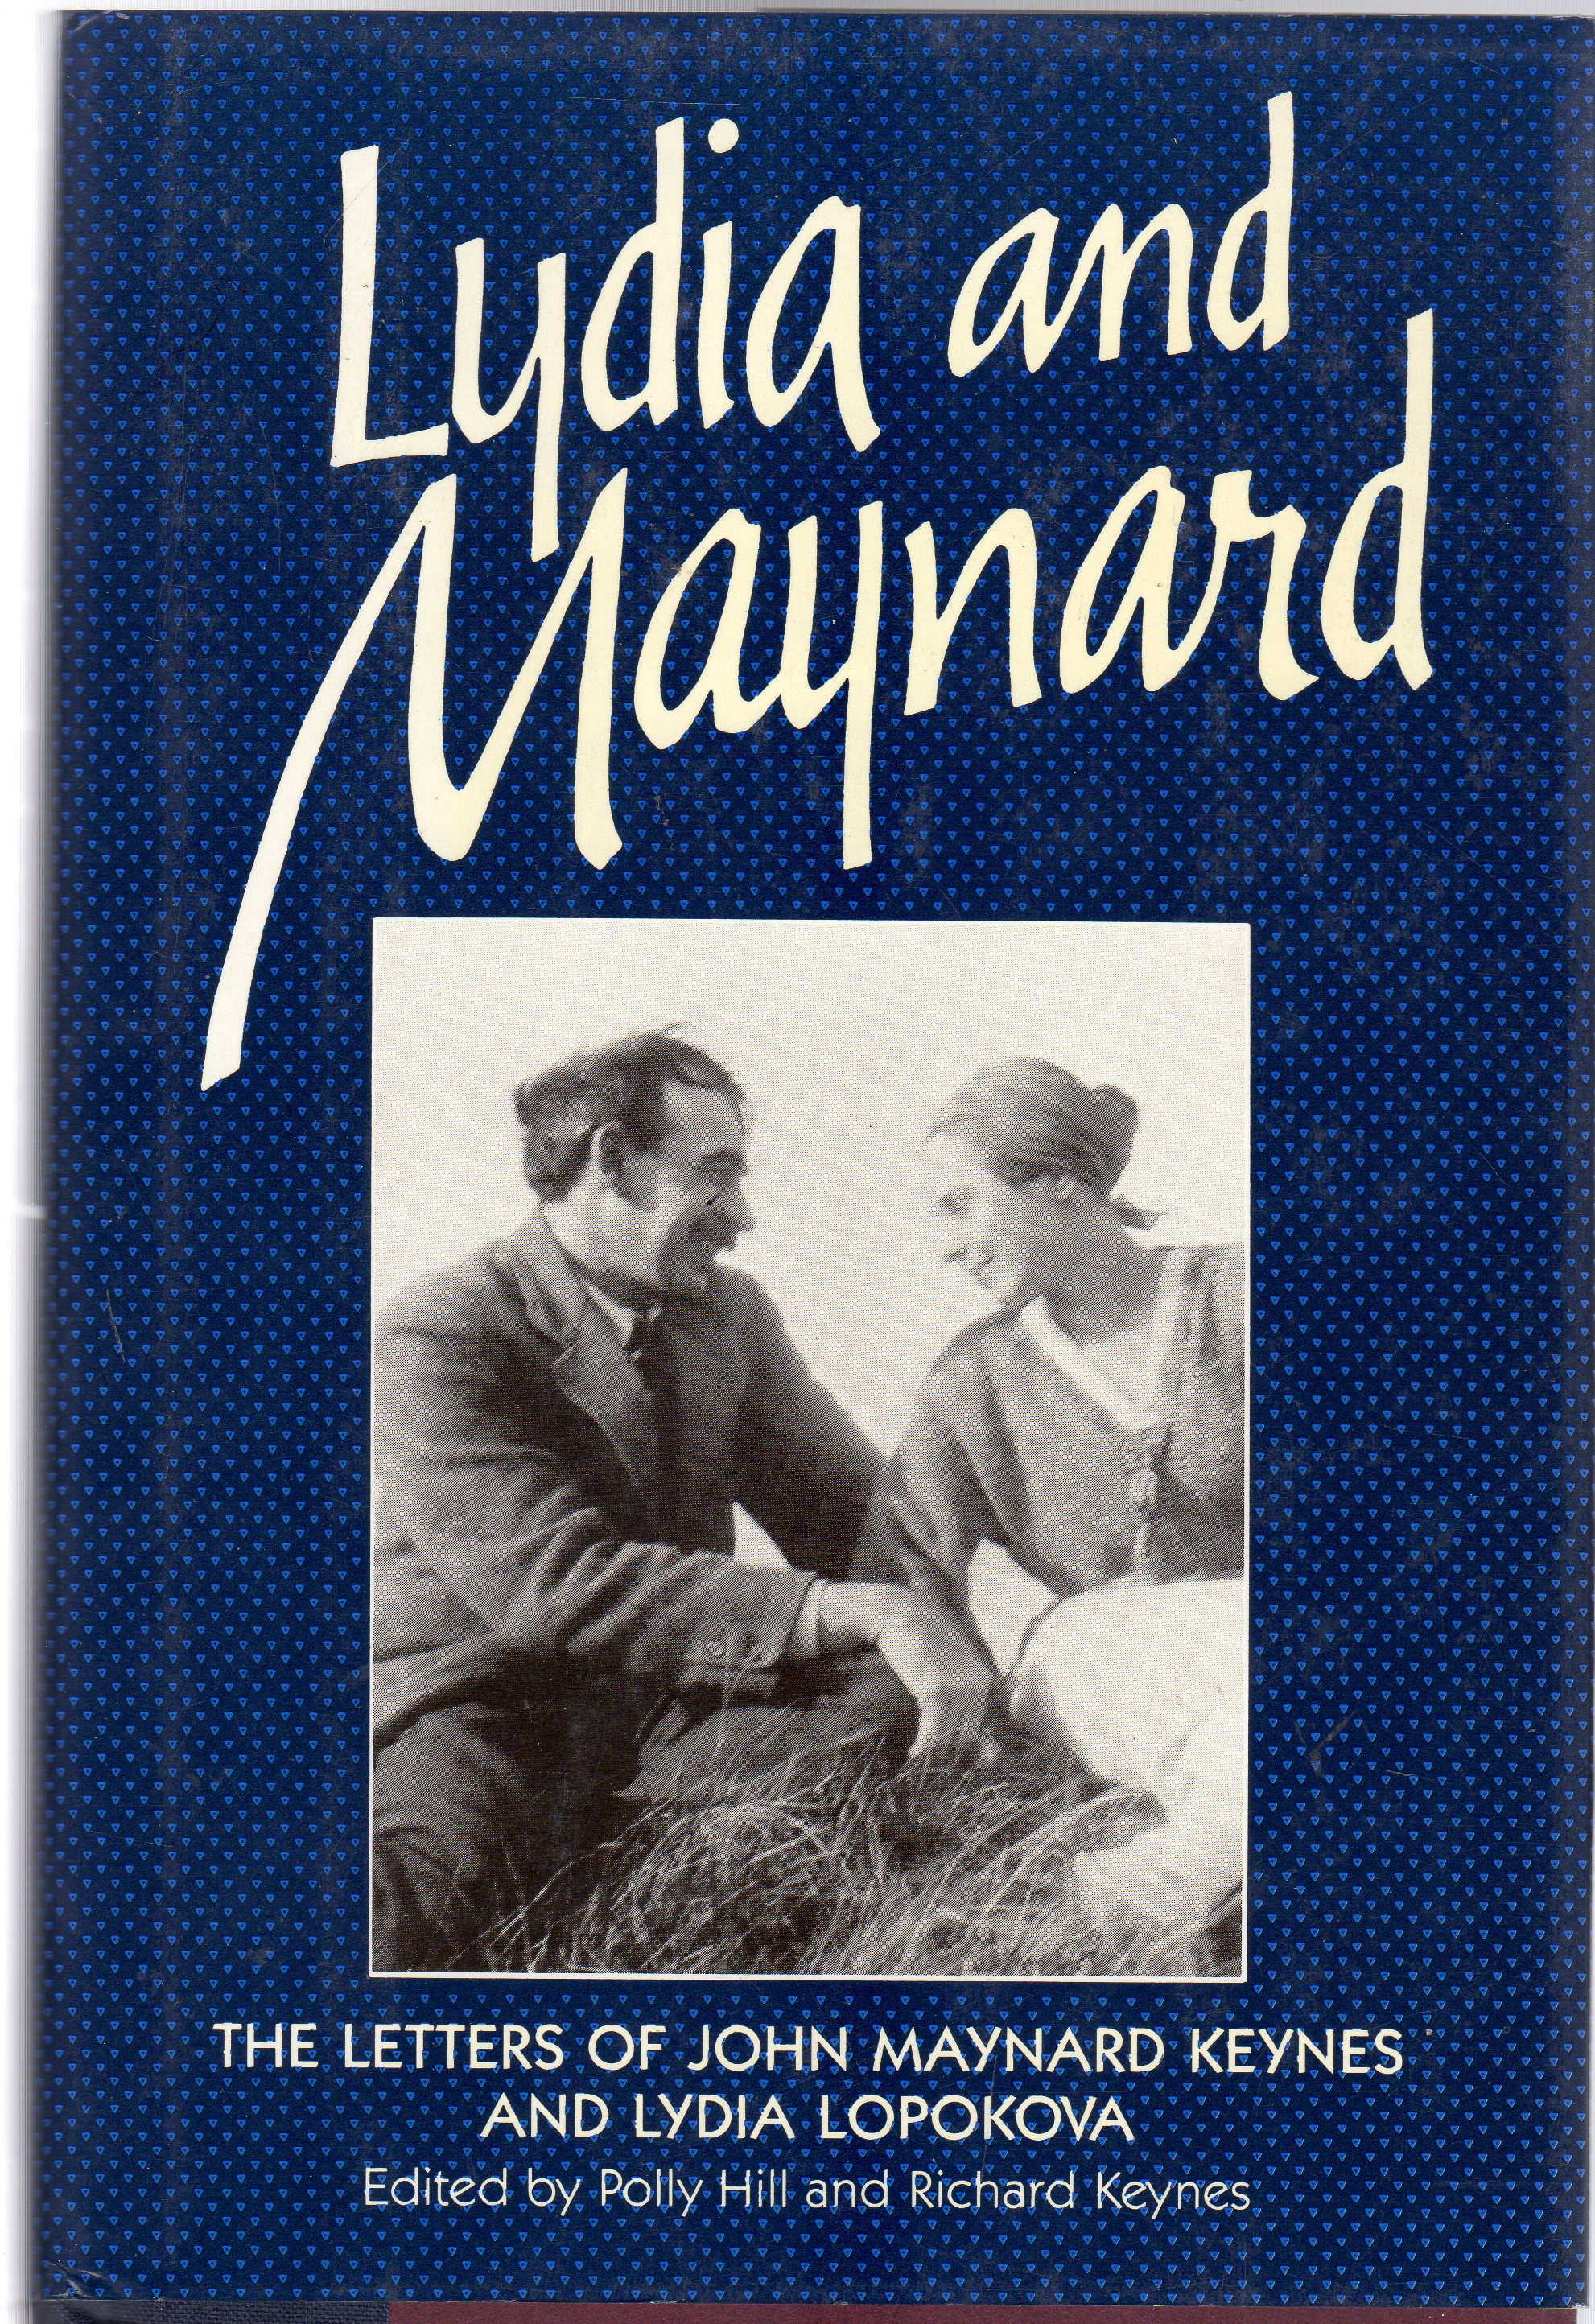 Image for The Letters of John Maynard Keynes and Lydia Lopokova